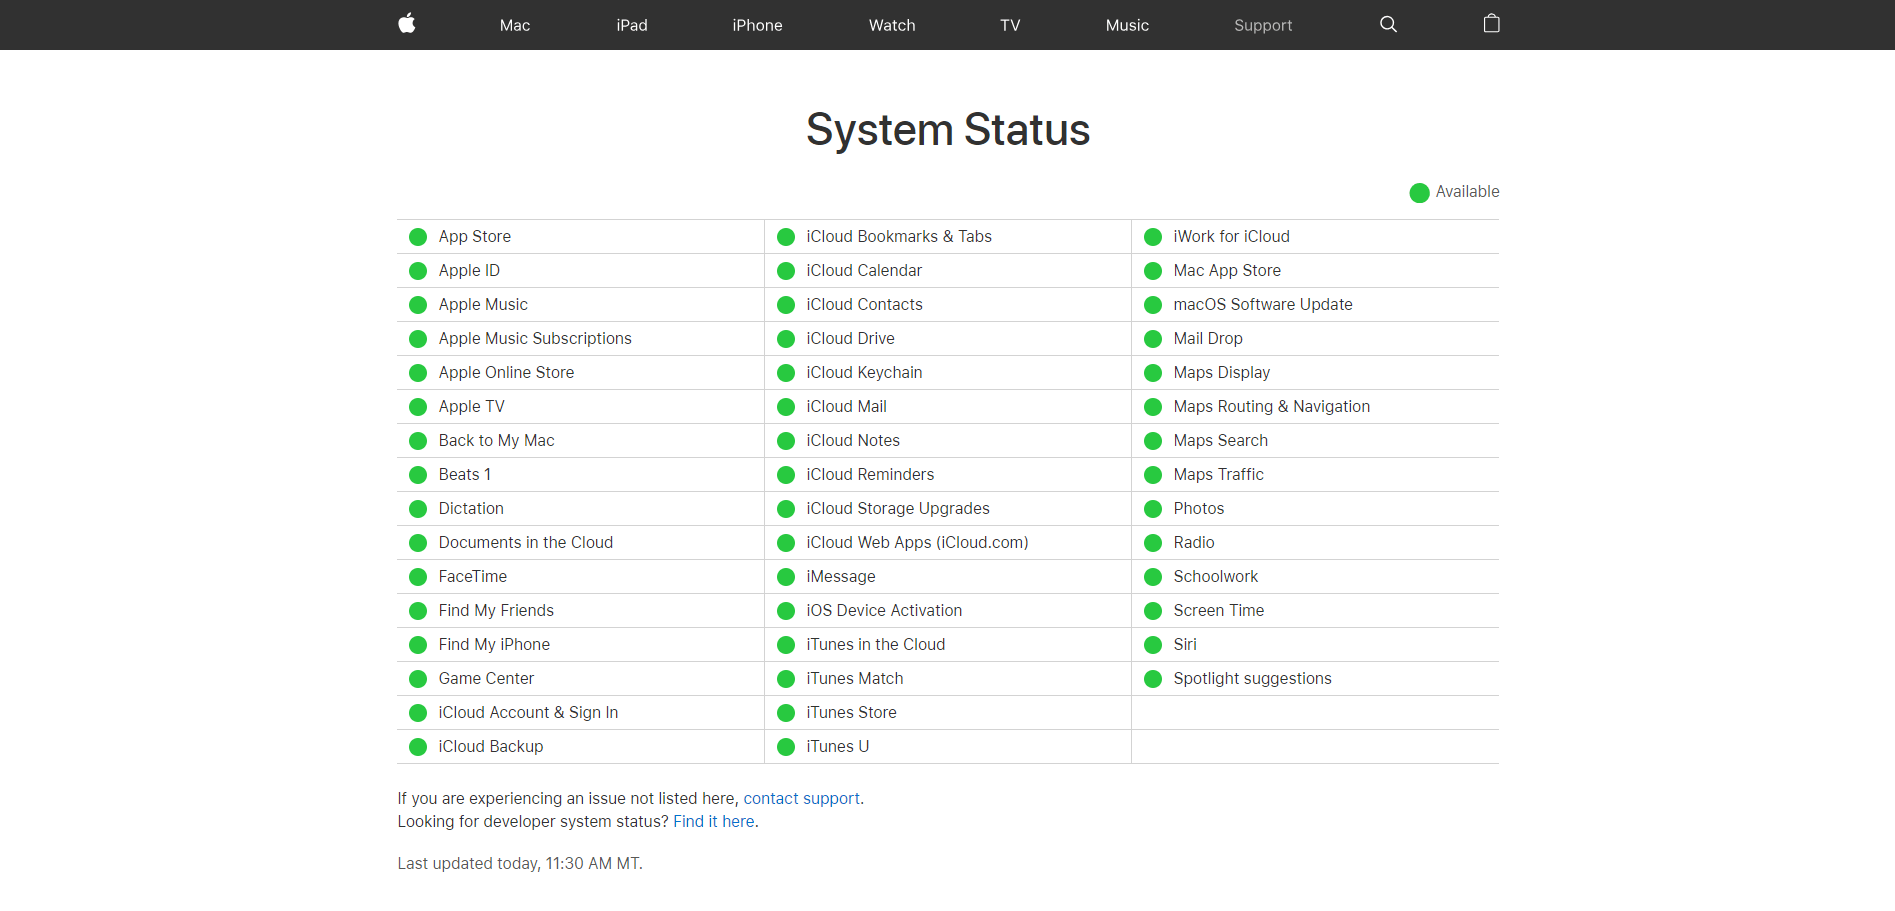 Apple TV+ System Status